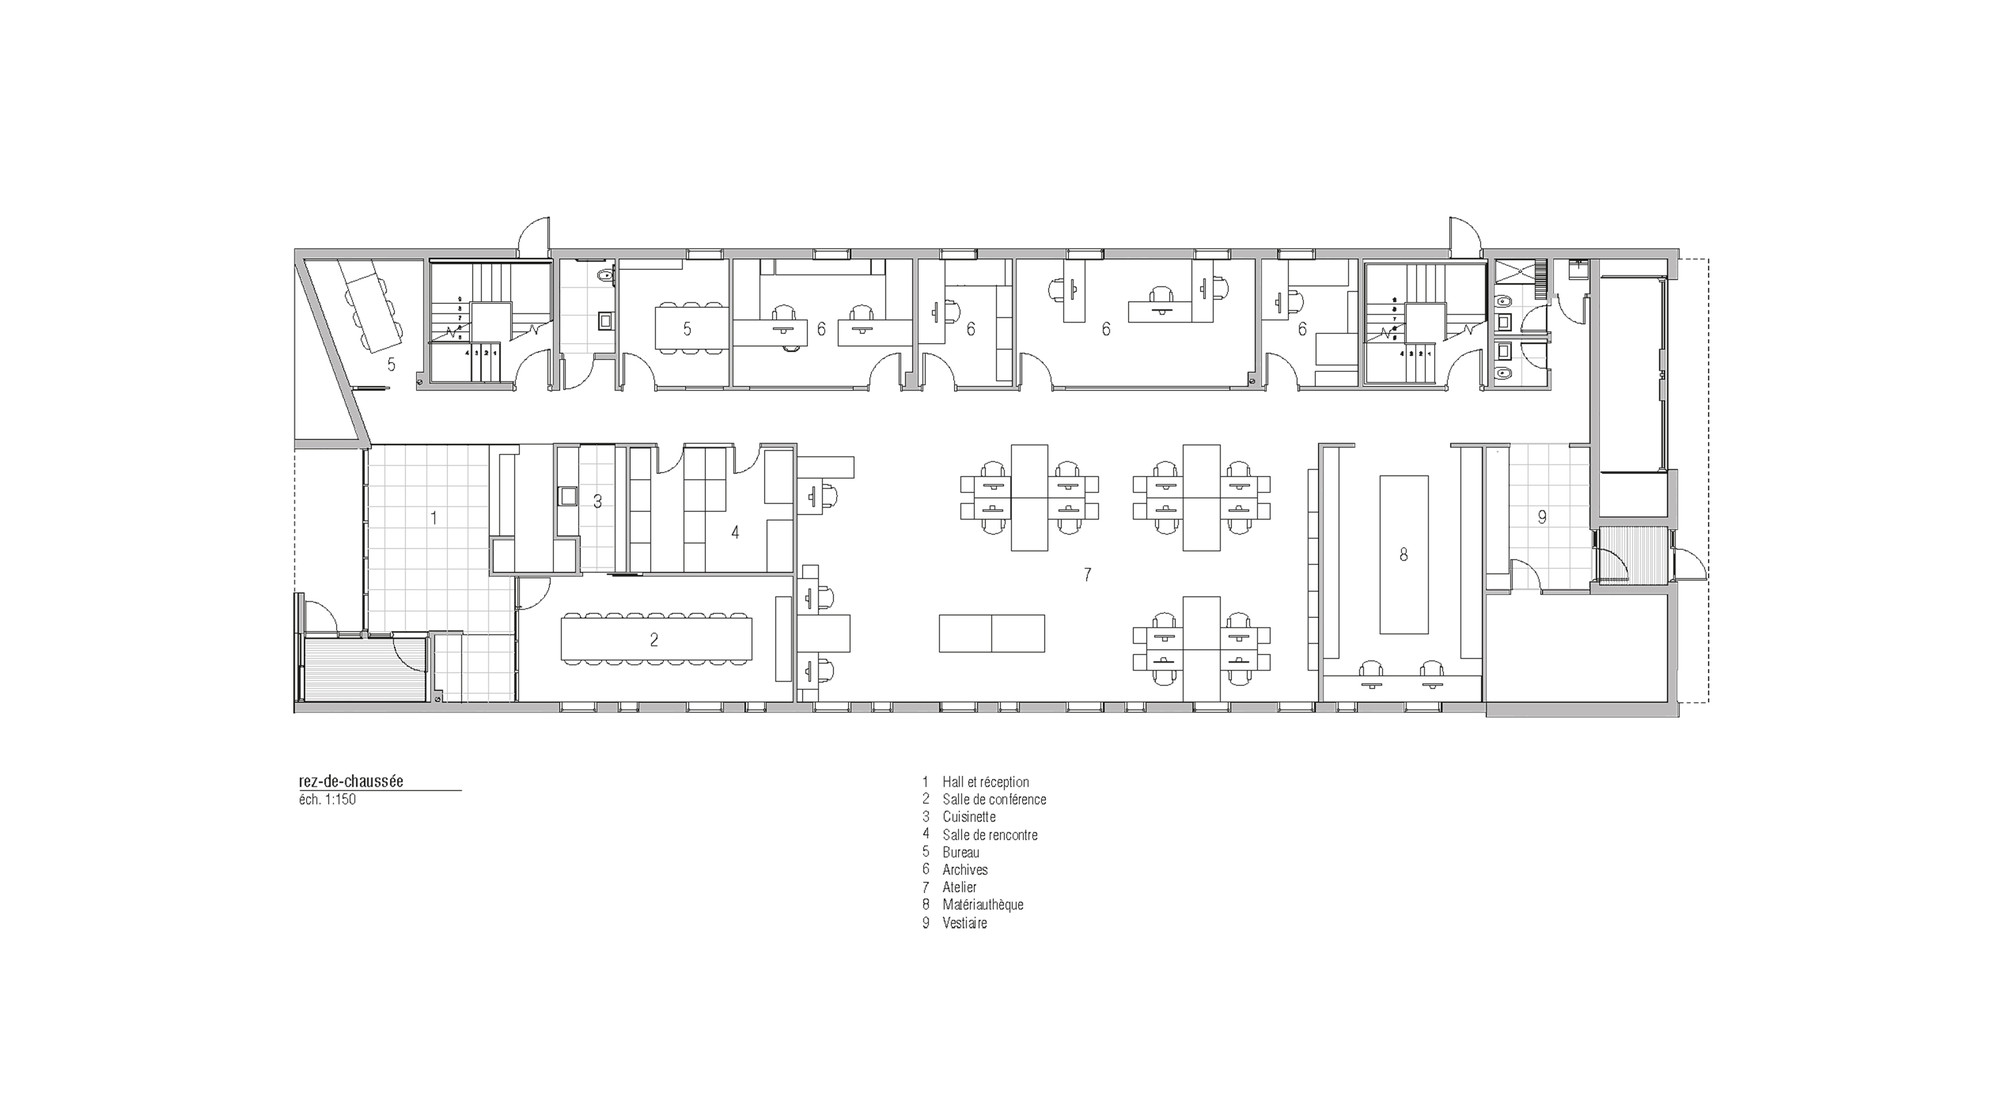 Awesome STGM Head Office,Ground Floor Plan